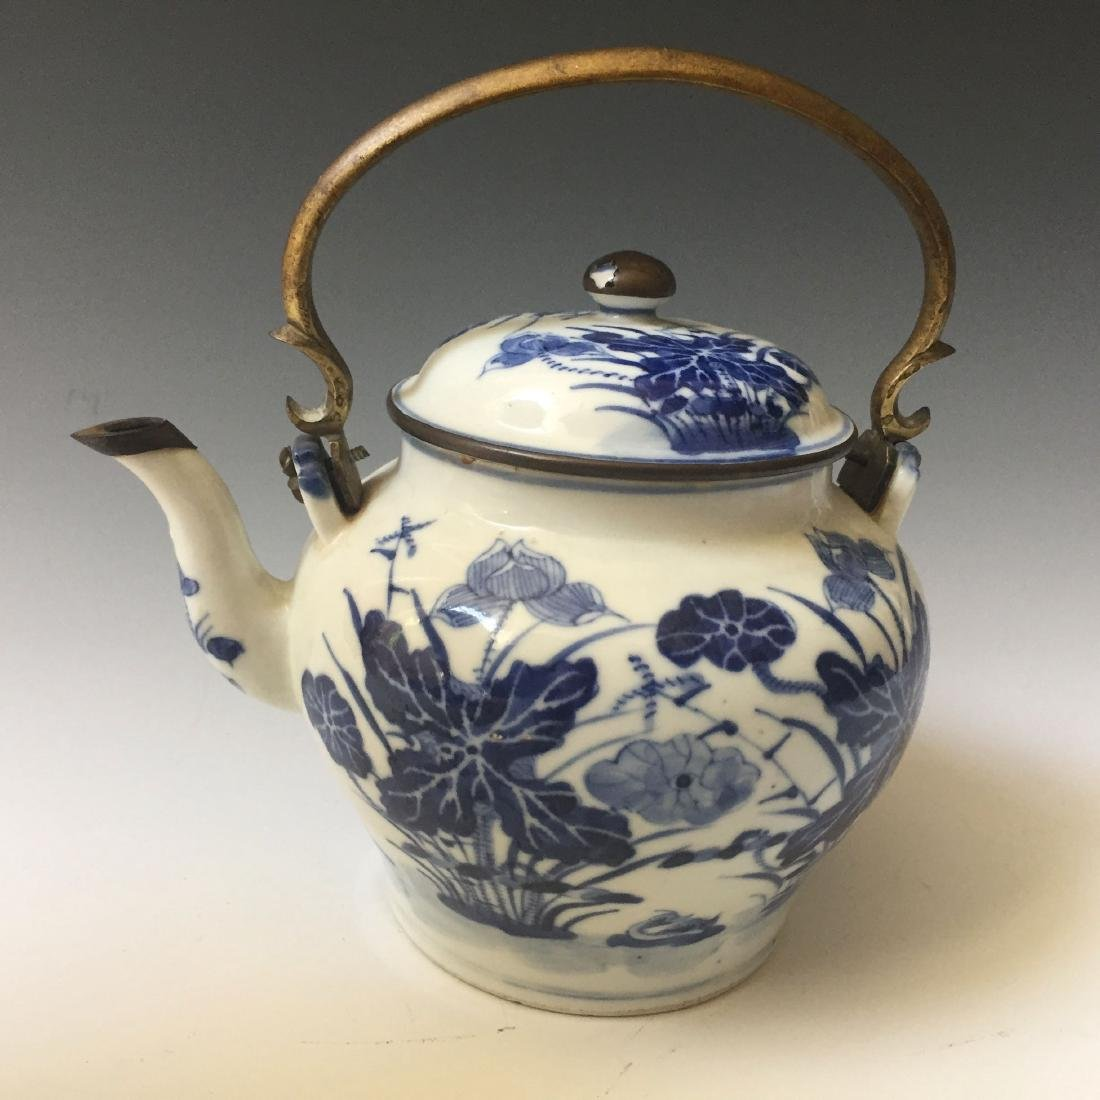 A CHINESE ANTIQUE BLUE AND WHITE PORCELAIN TEAPOT,19C.